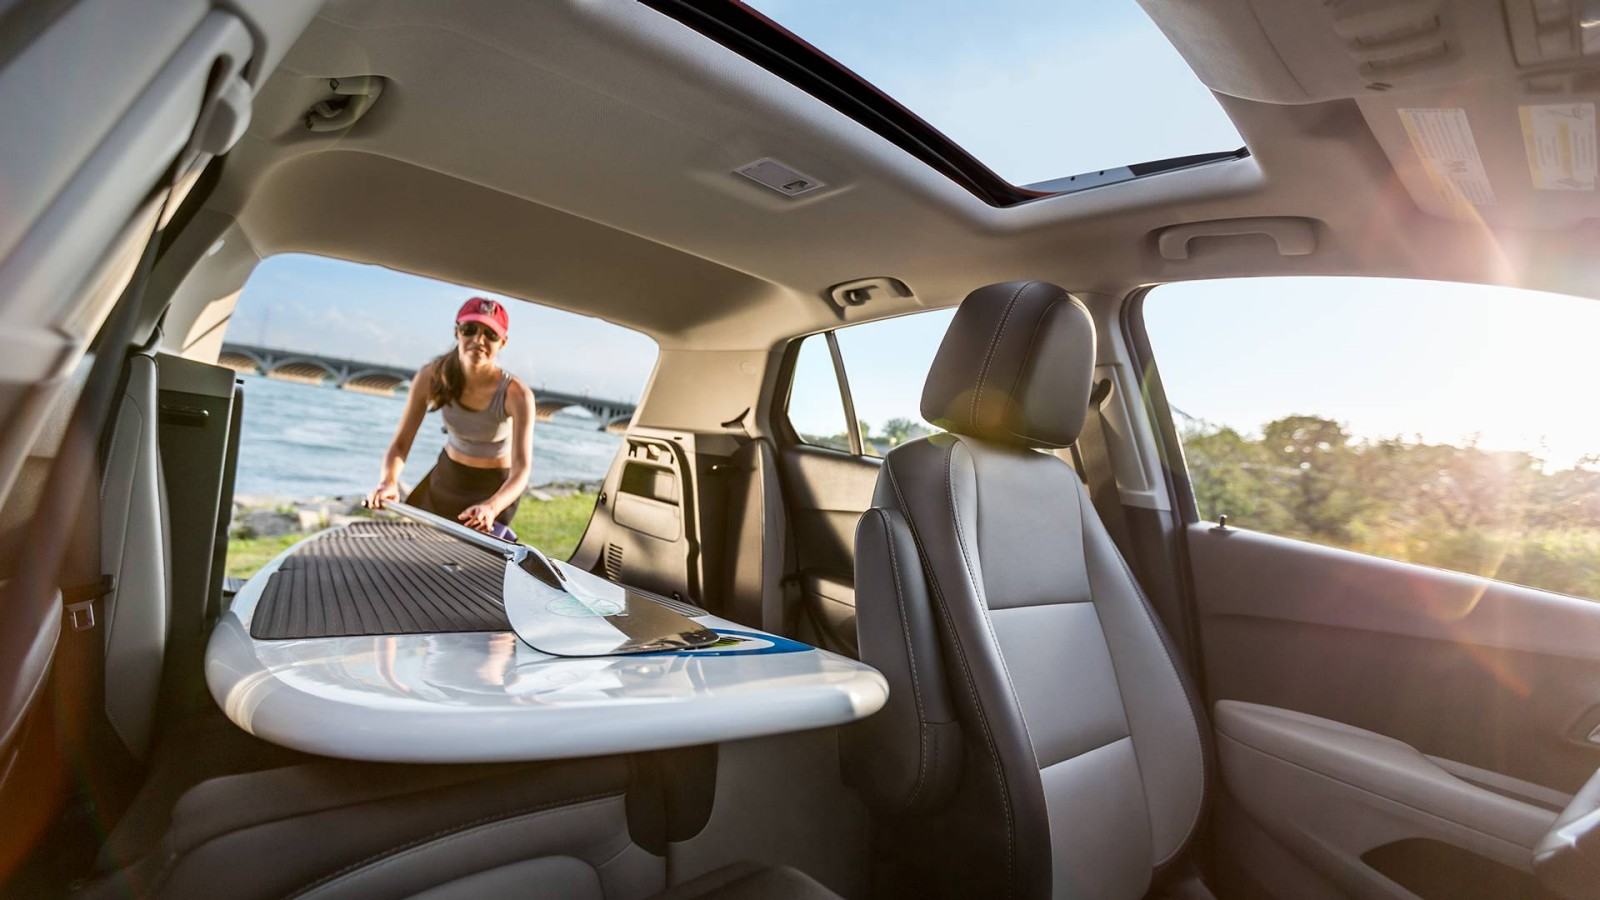 2016 Chevrolet Trax Interior Capacity